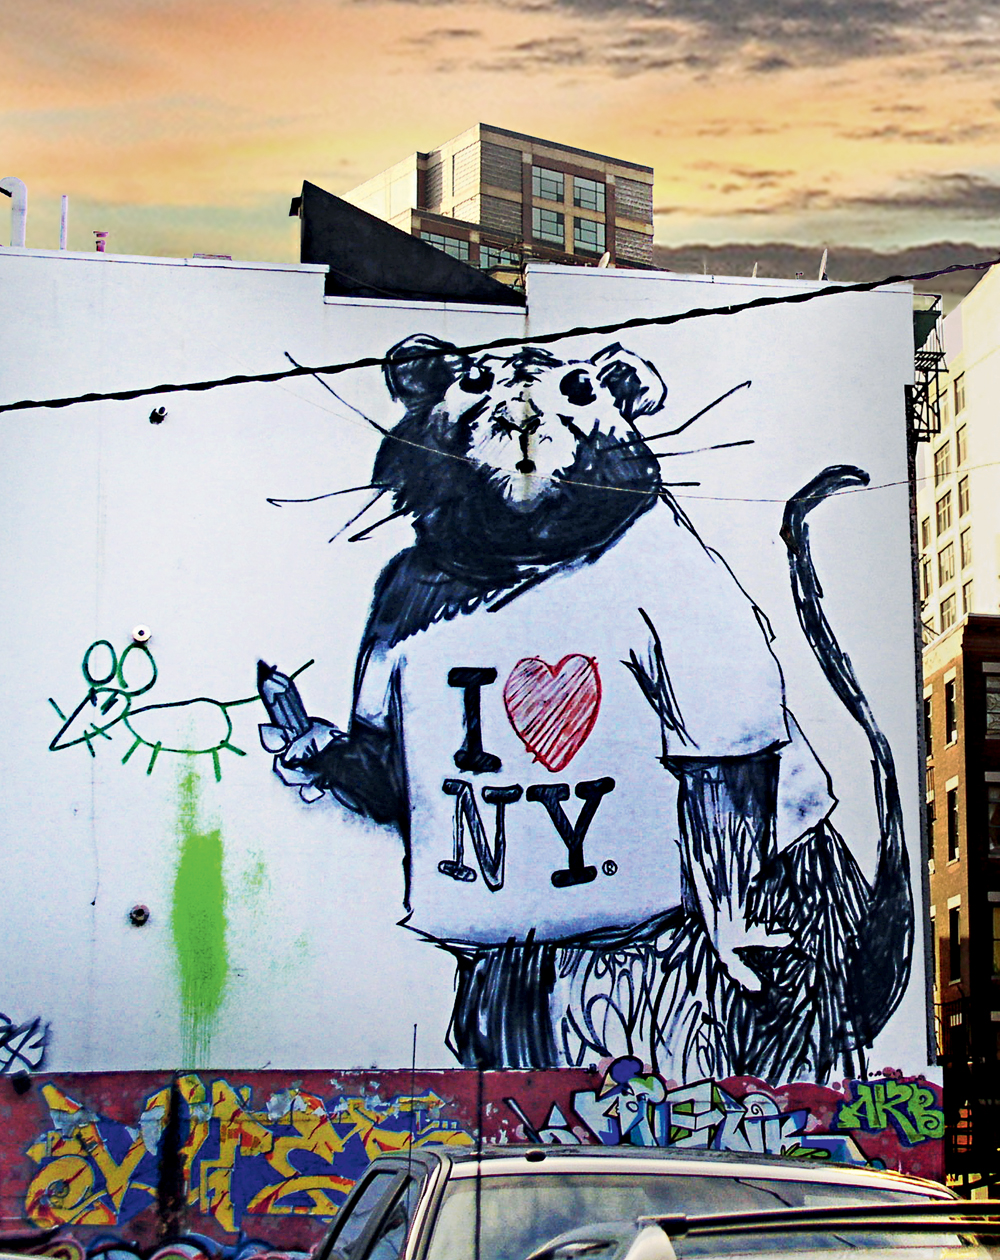 New York street art by Jaime Rojo